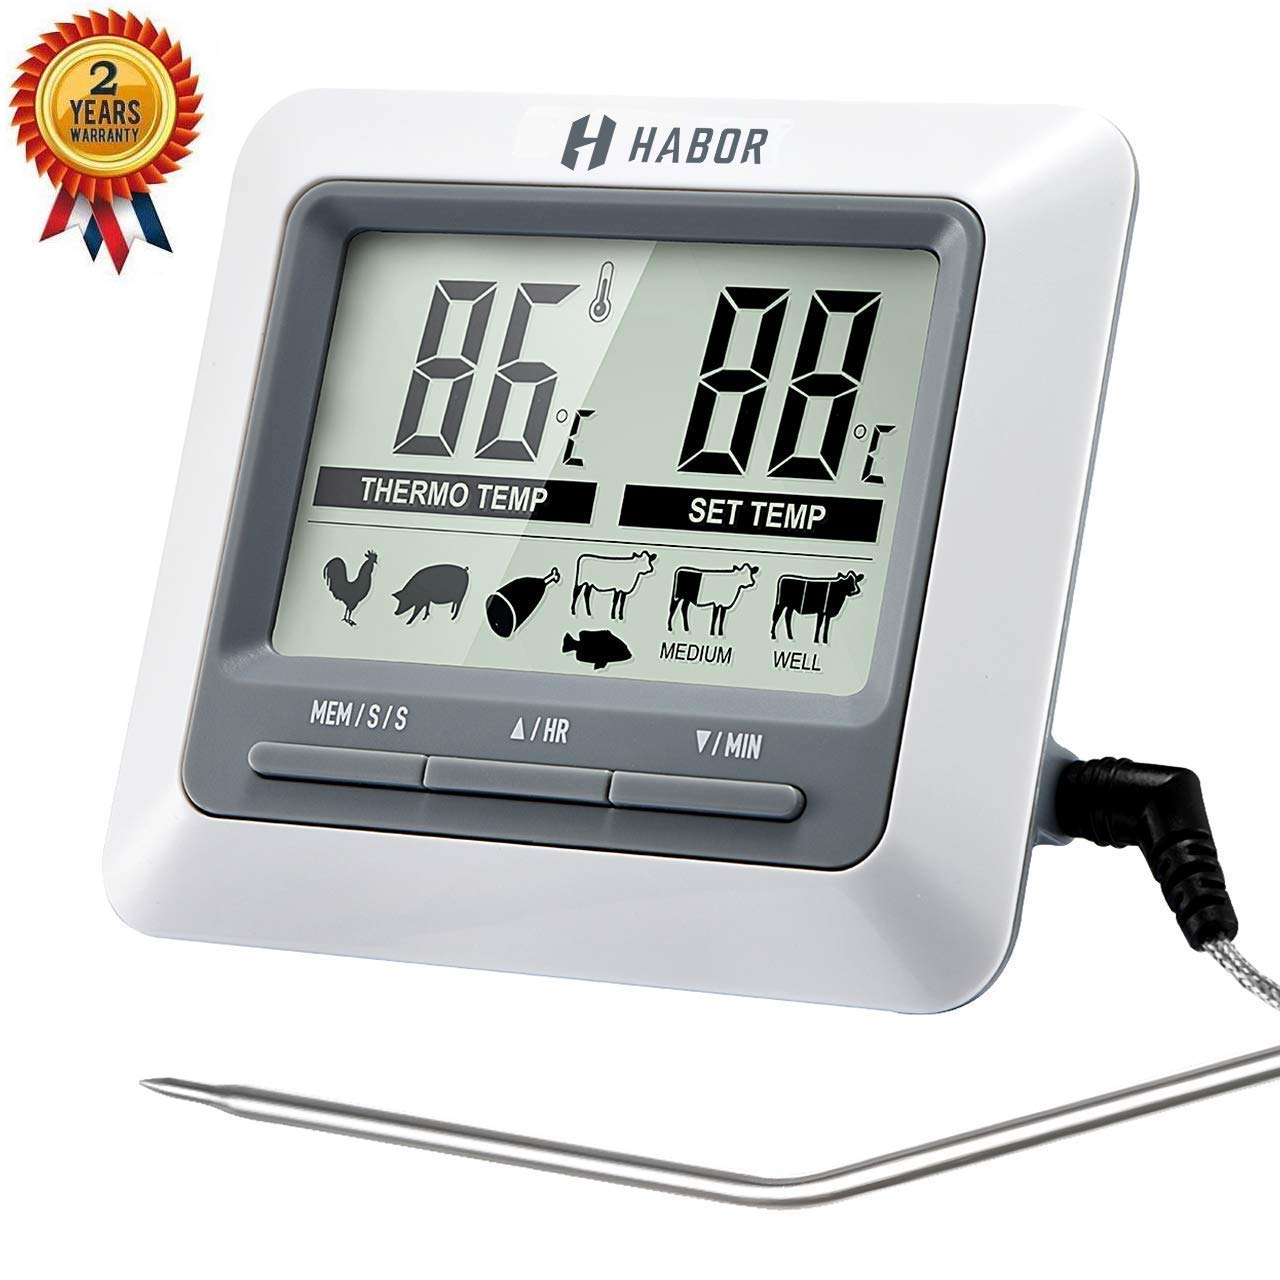 Habor Fleischthermometer Grillthermometer Ofenthermometer großen LCD Display